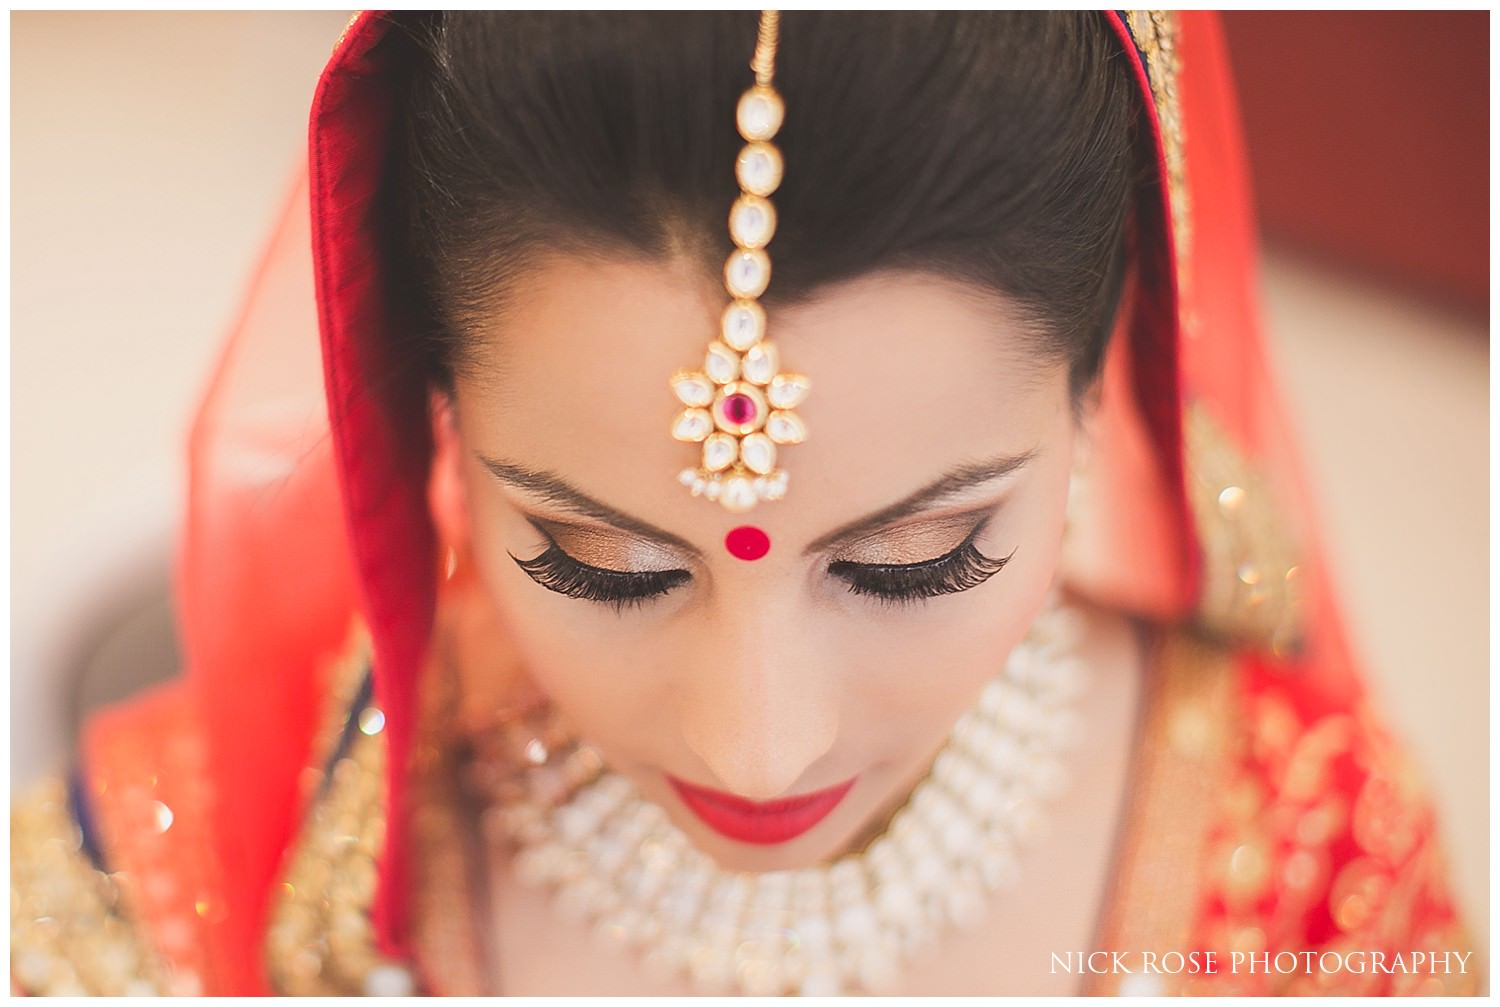 Beautiful Indian bride before a Hindu wedding at and East Wintergarden wedding in Canary Wharf London